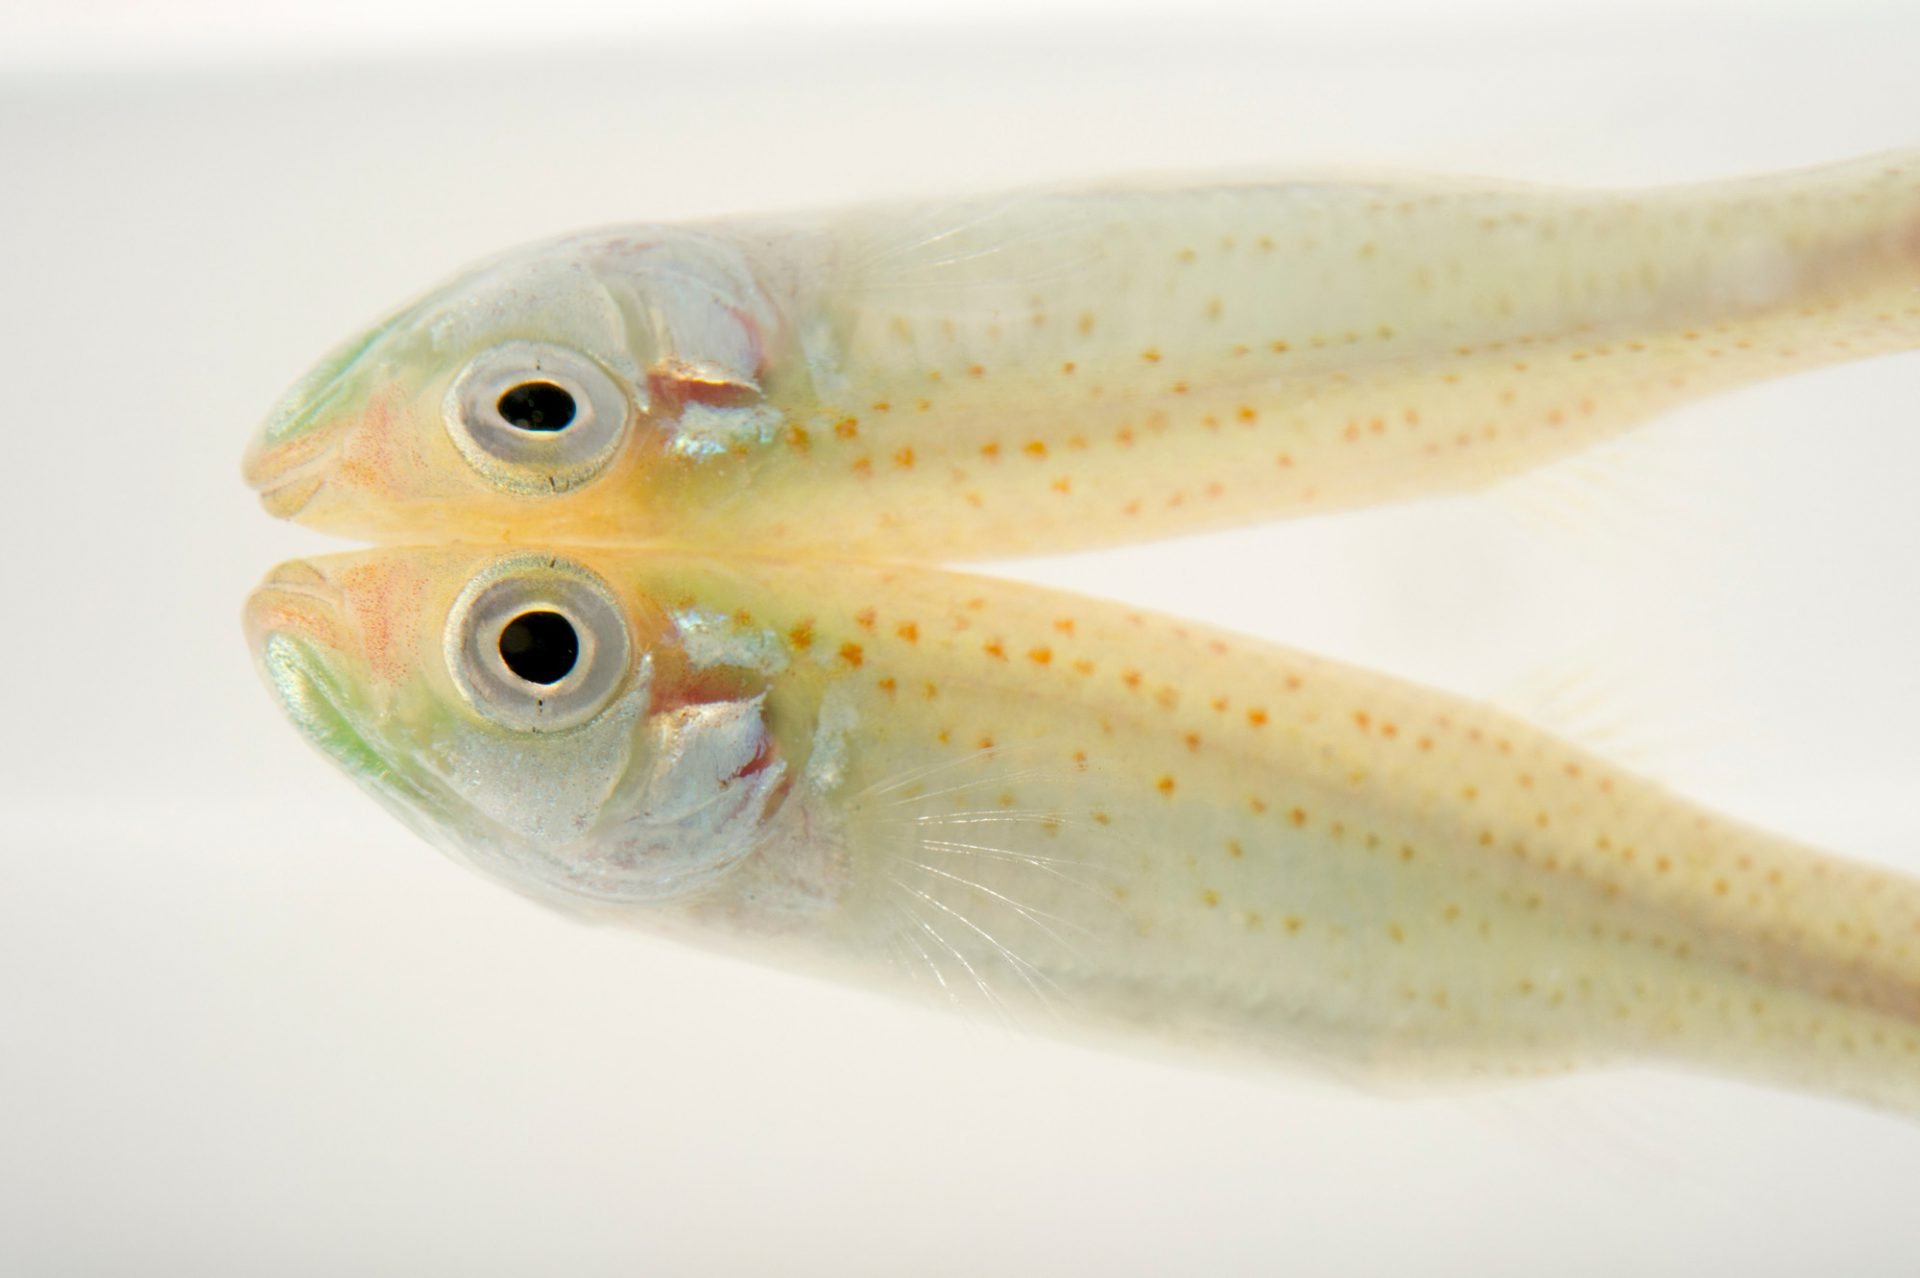 Picture of a golden topminnow (Fundulus chrysotus) at the US Geological Survey Southeast Science Center.